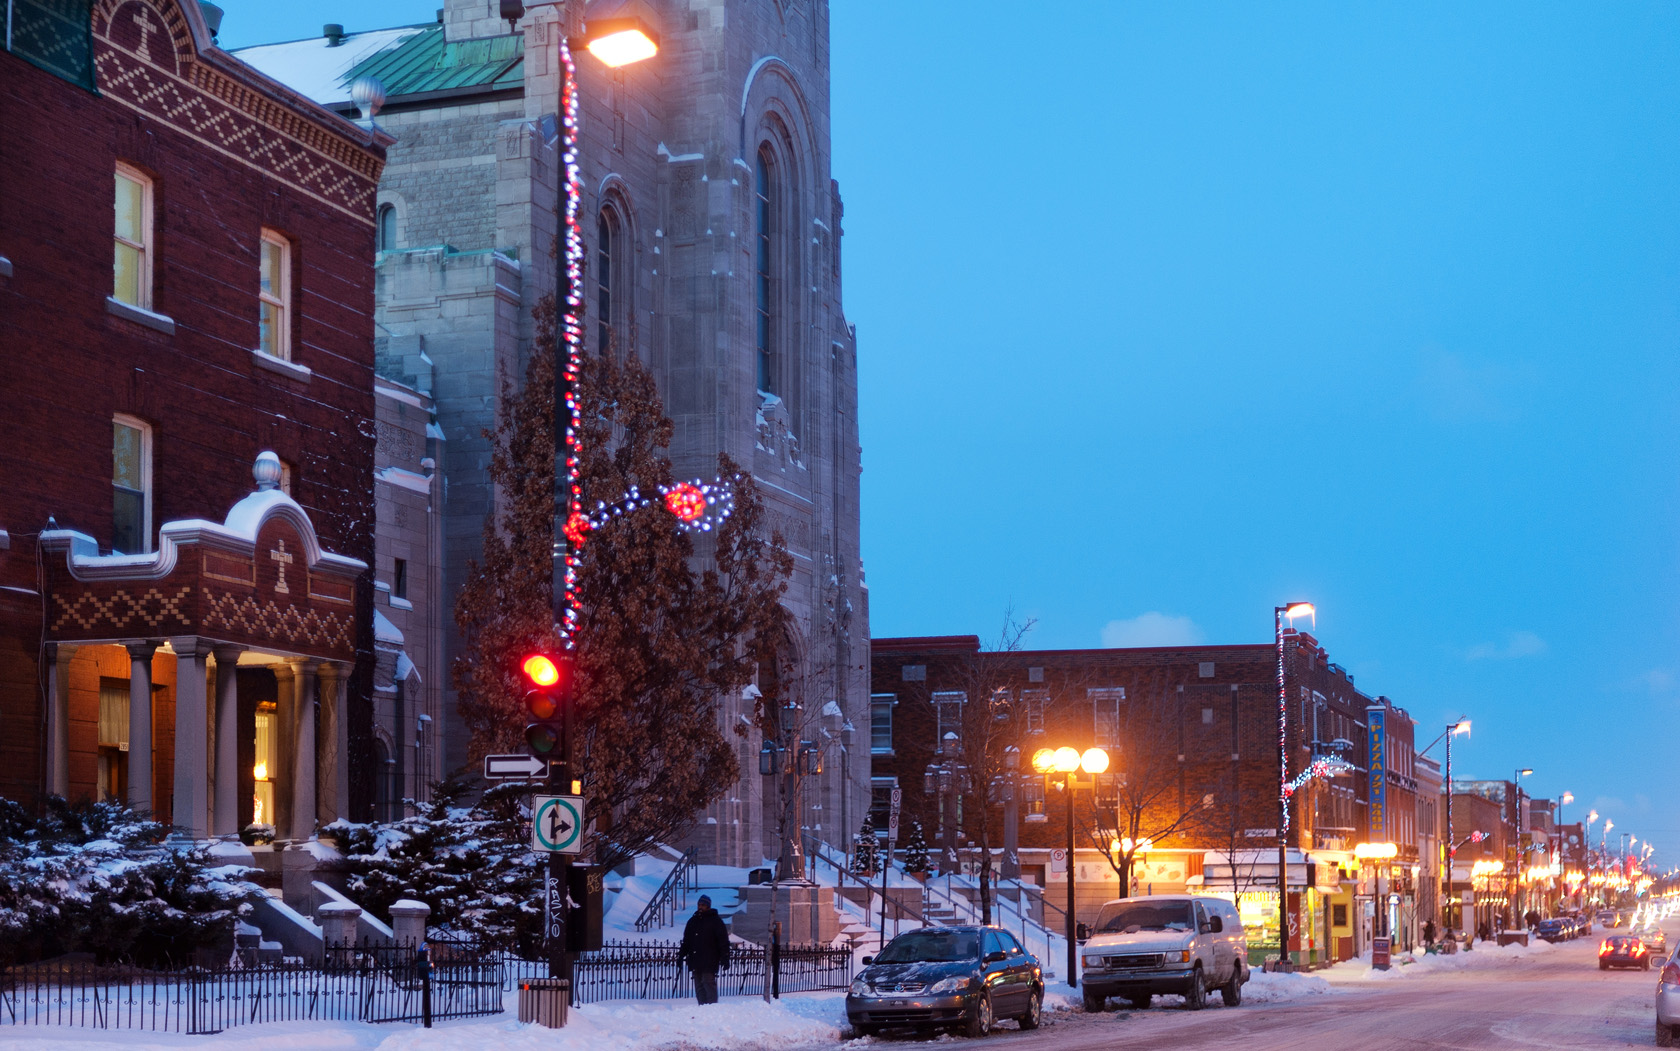 20101214-DSC_1558-montreal-rosemont-masson-street-church-web